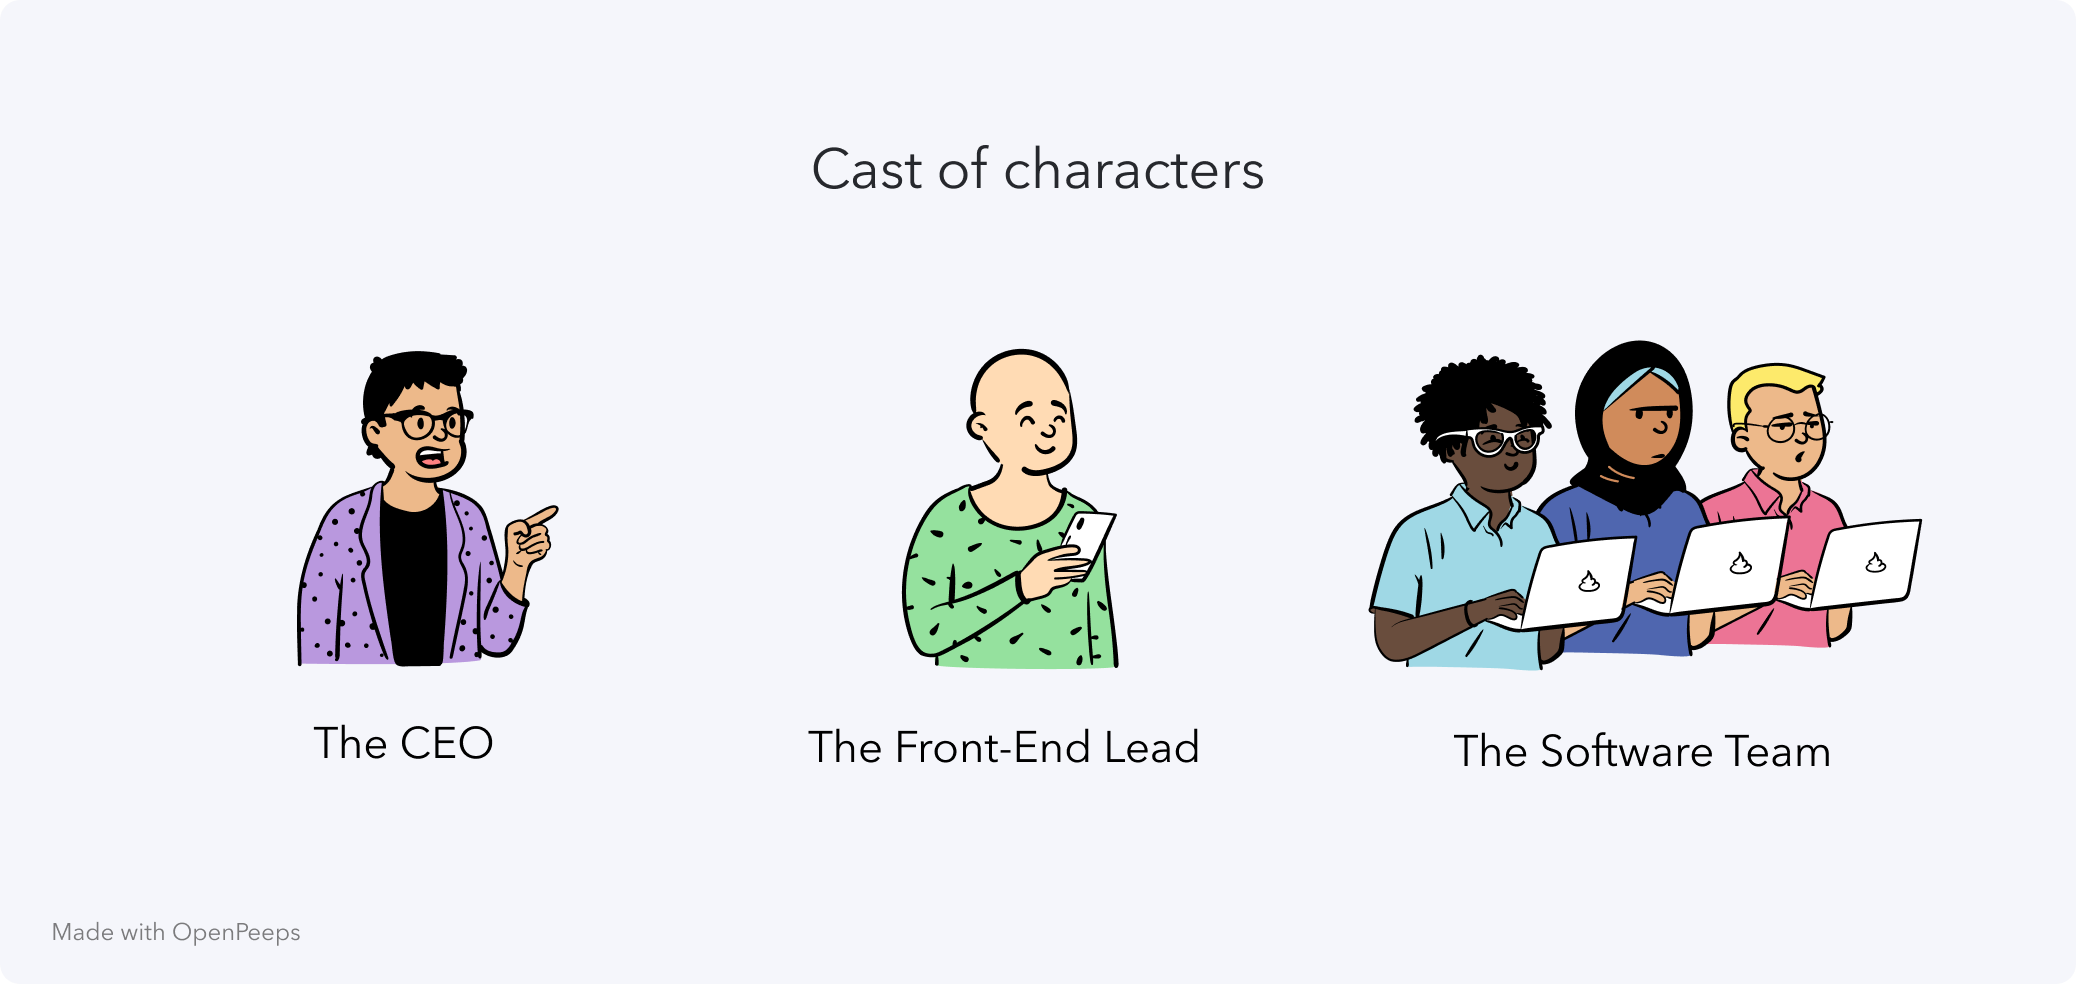 An illustration shows the cast of characters for this mystery: the CEO, the Front-End Lead and a group of Software Team members.